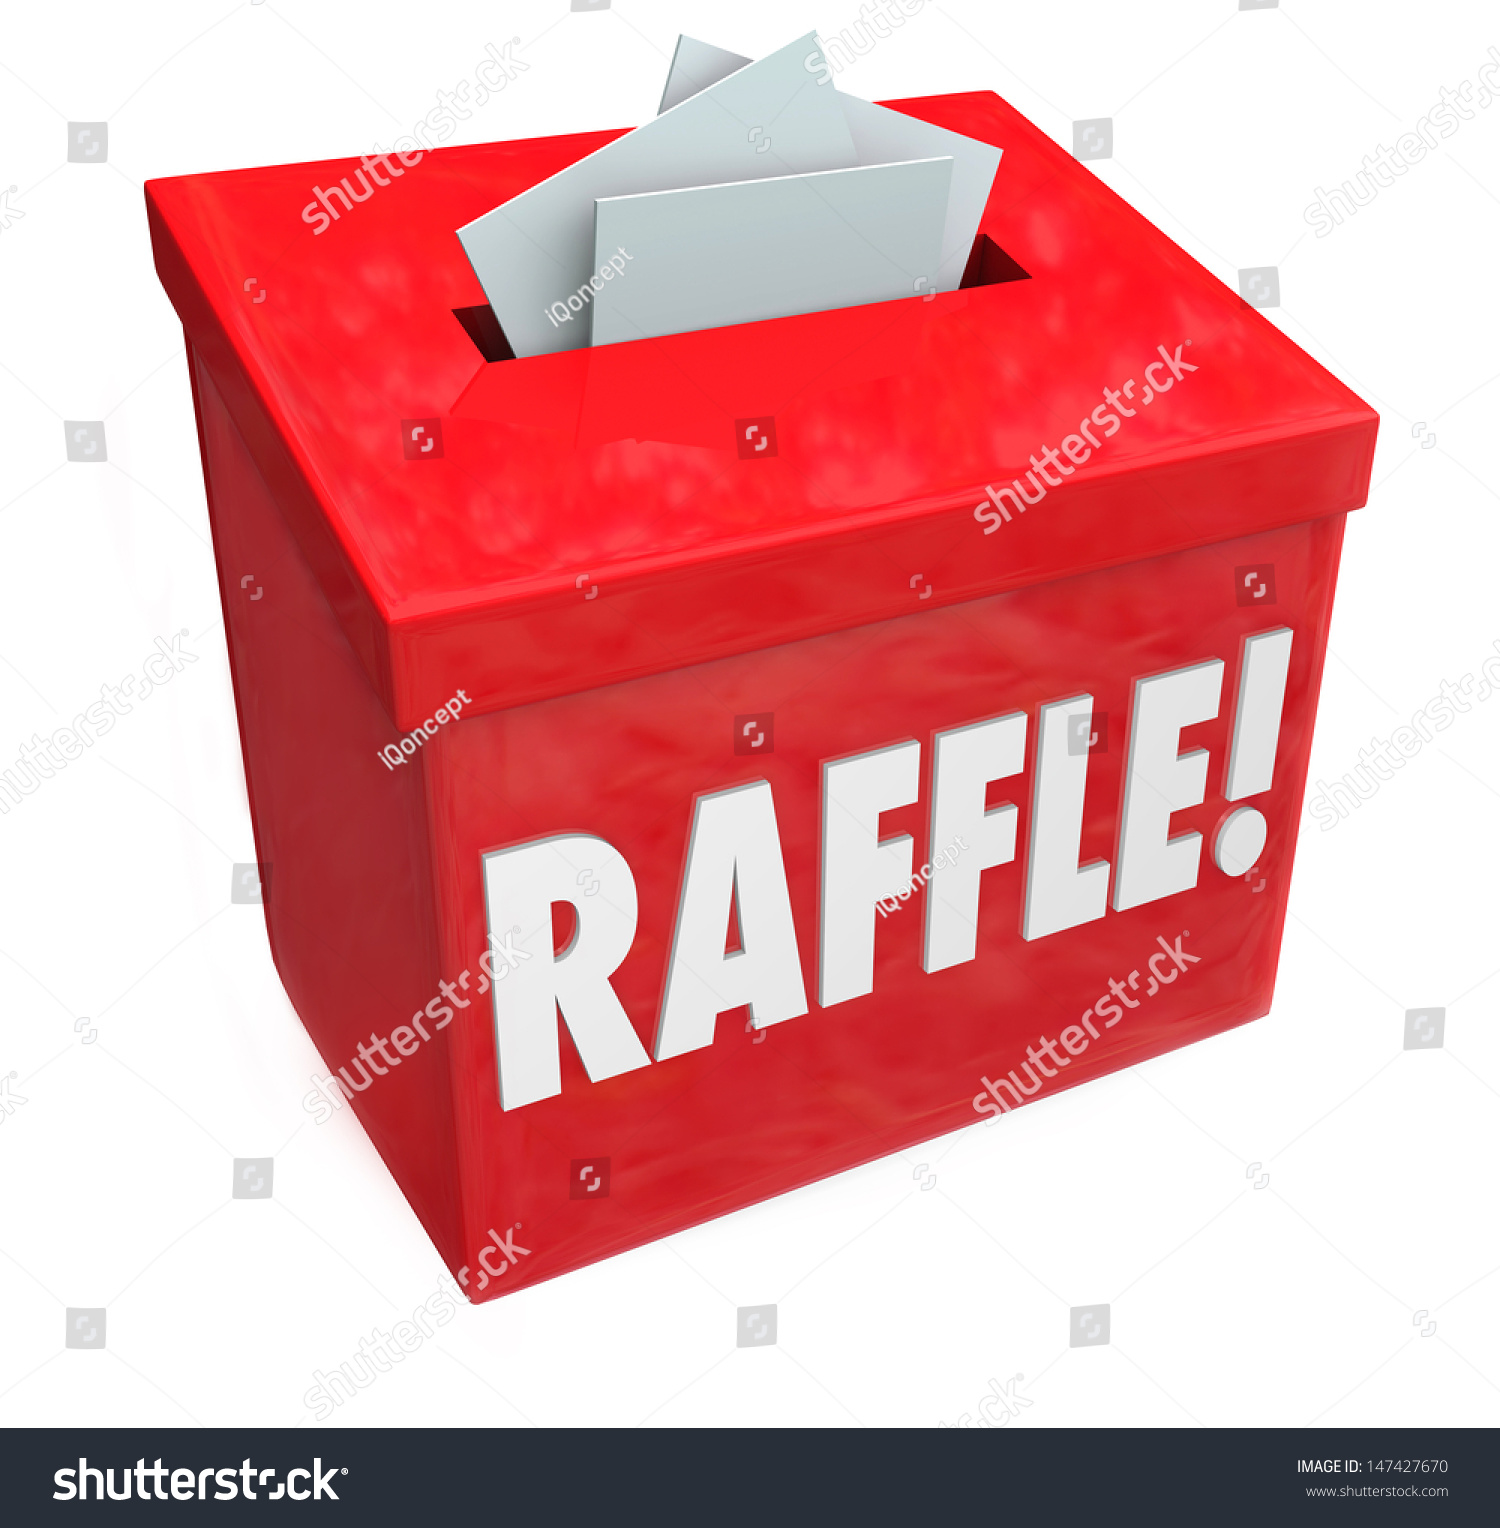 raffle deutsch